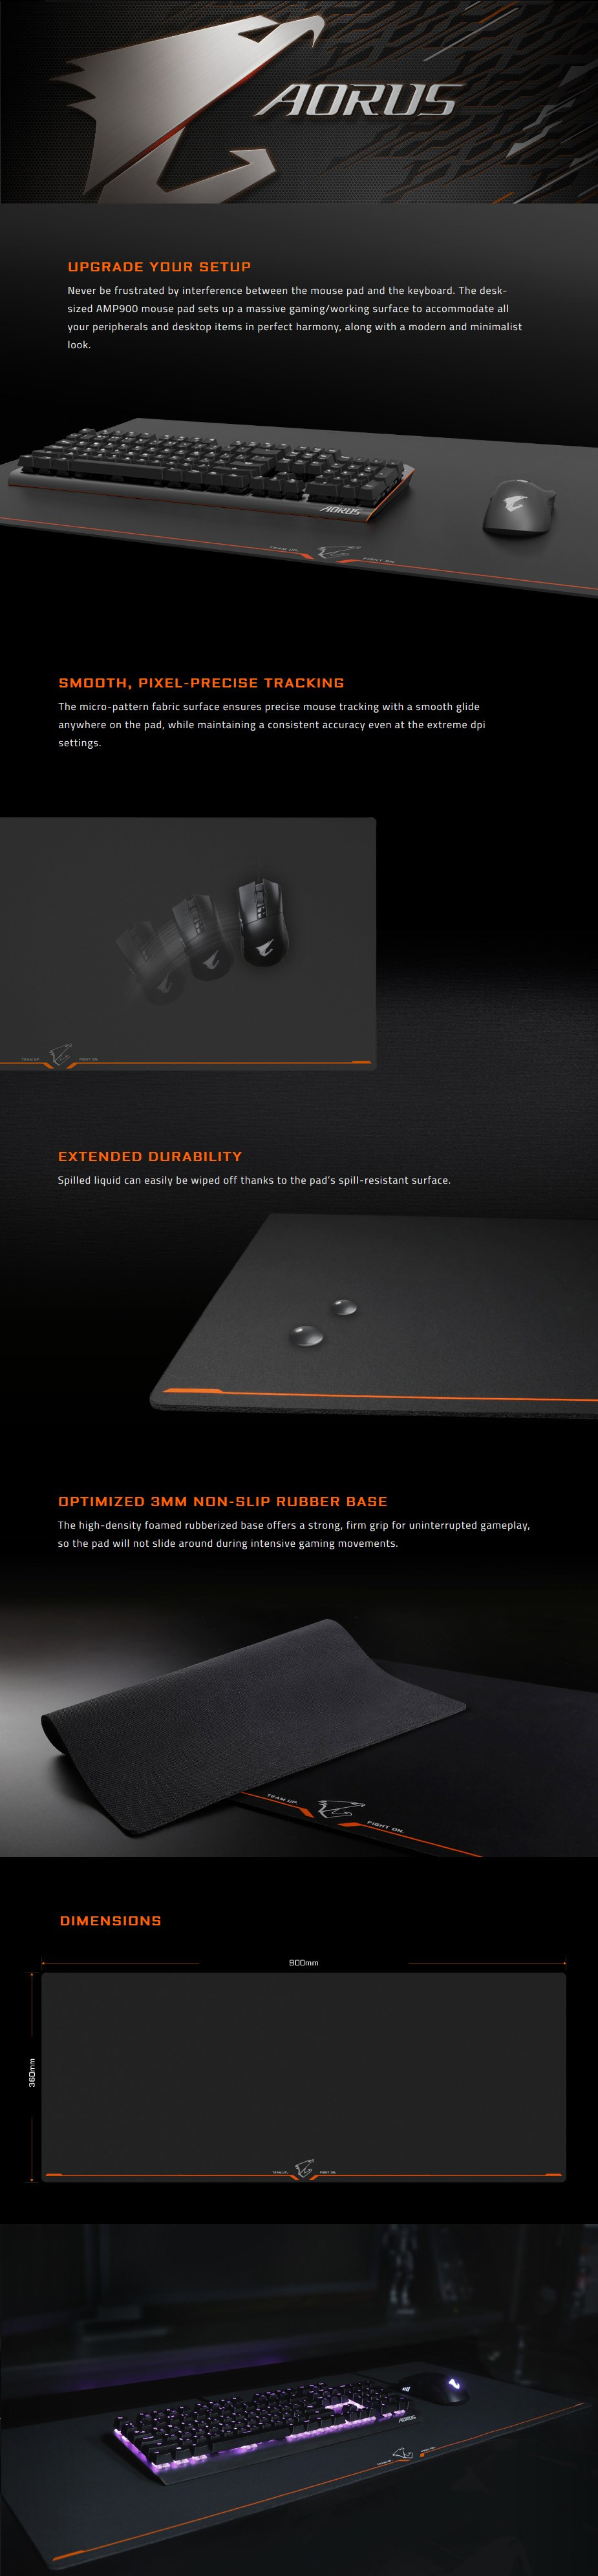 Gigabyte AORUS AMP900 Extended Gaming Mouse Pad - Overview 1